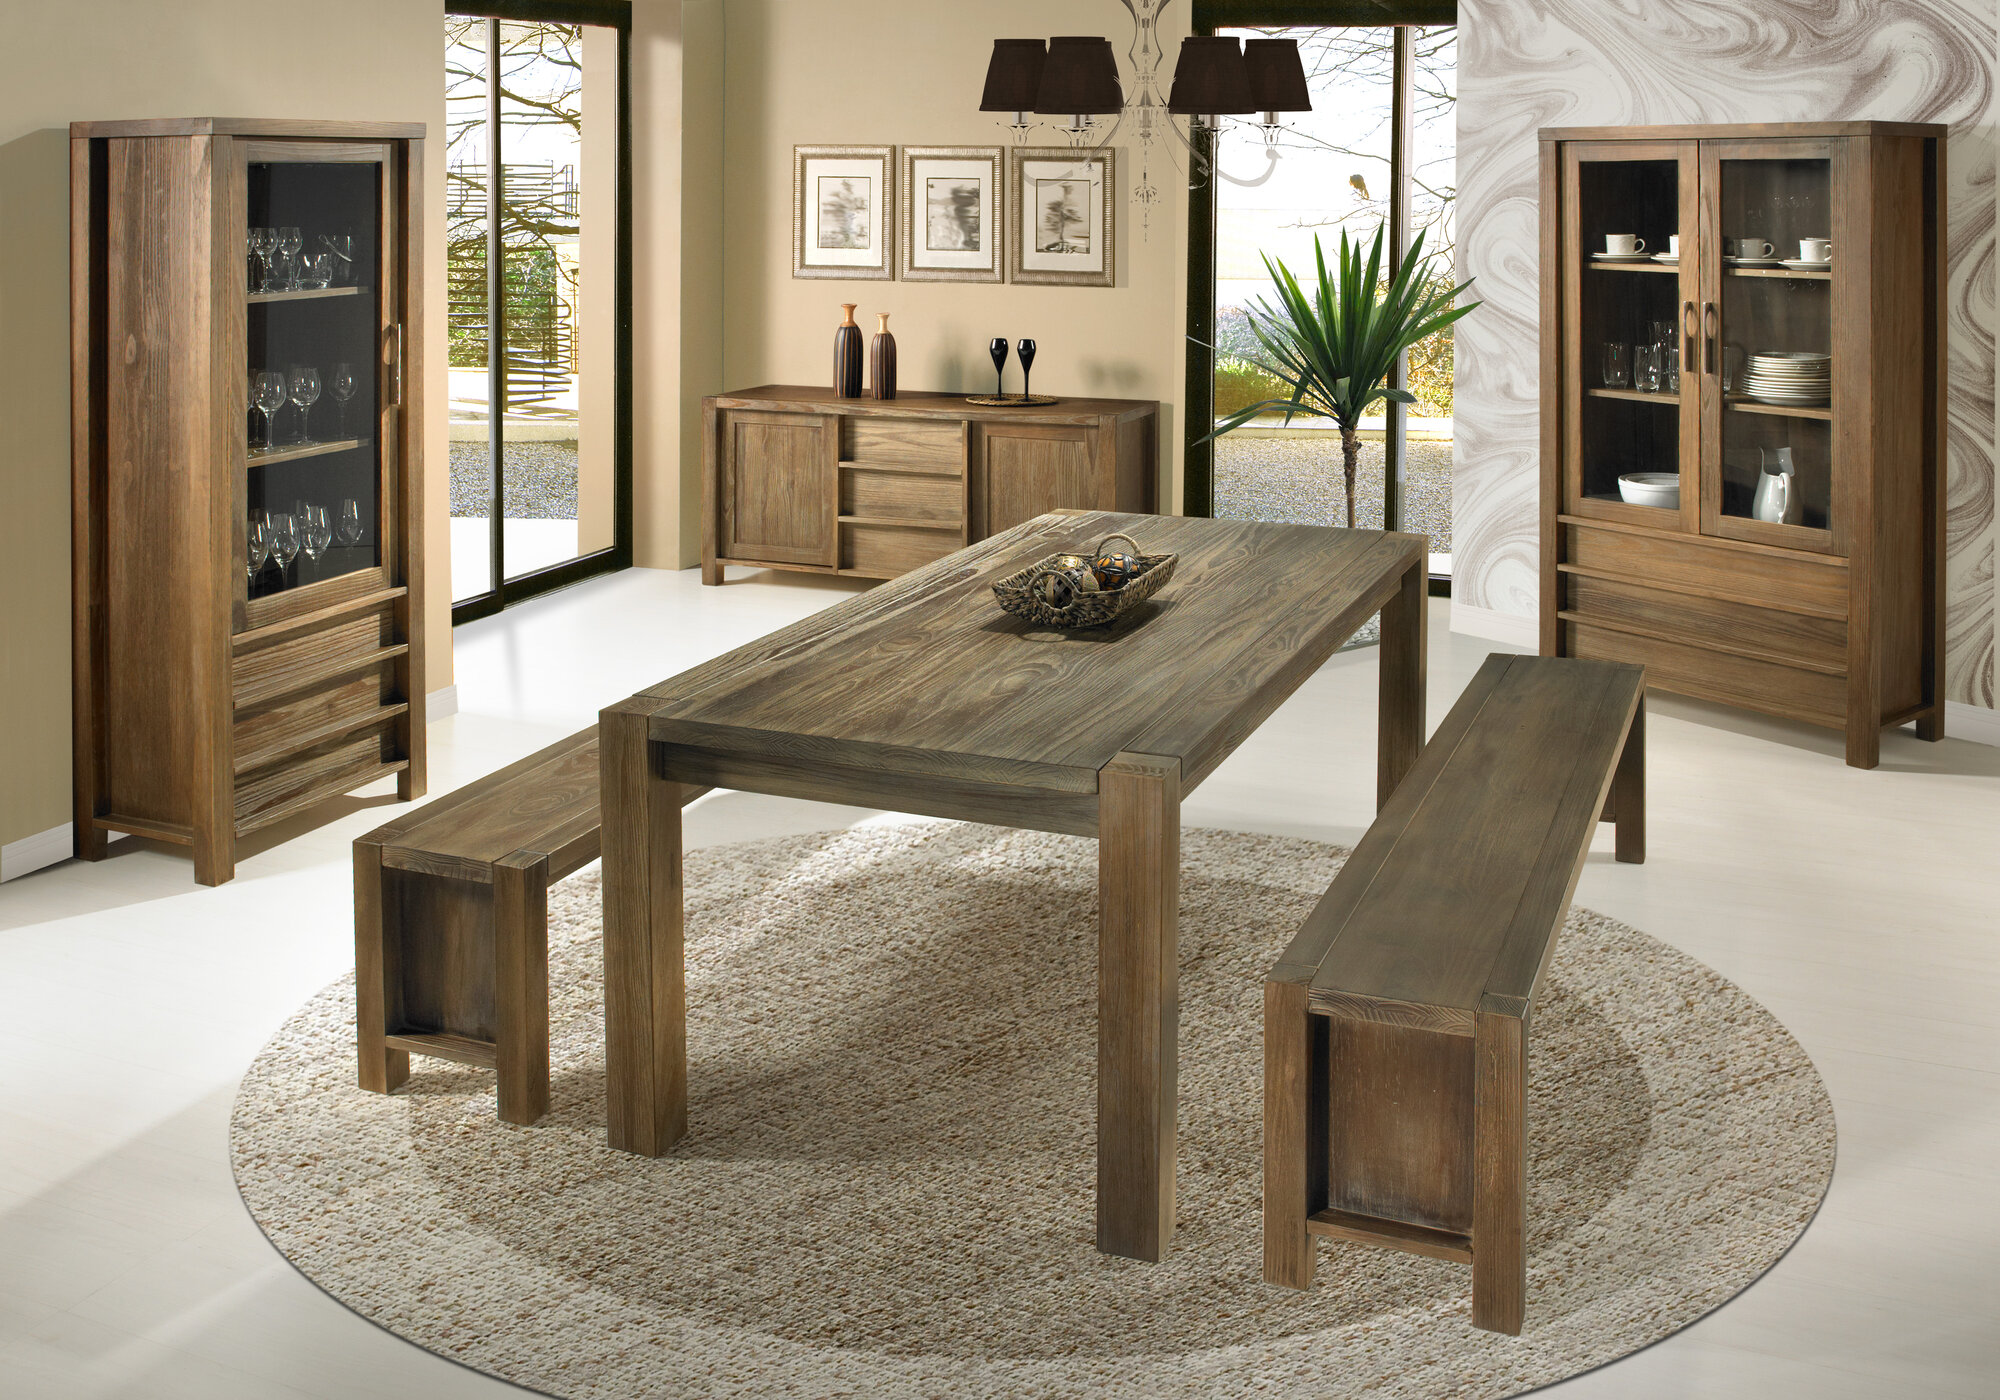 Wildon home linear dining table ebay for Wildon home dining